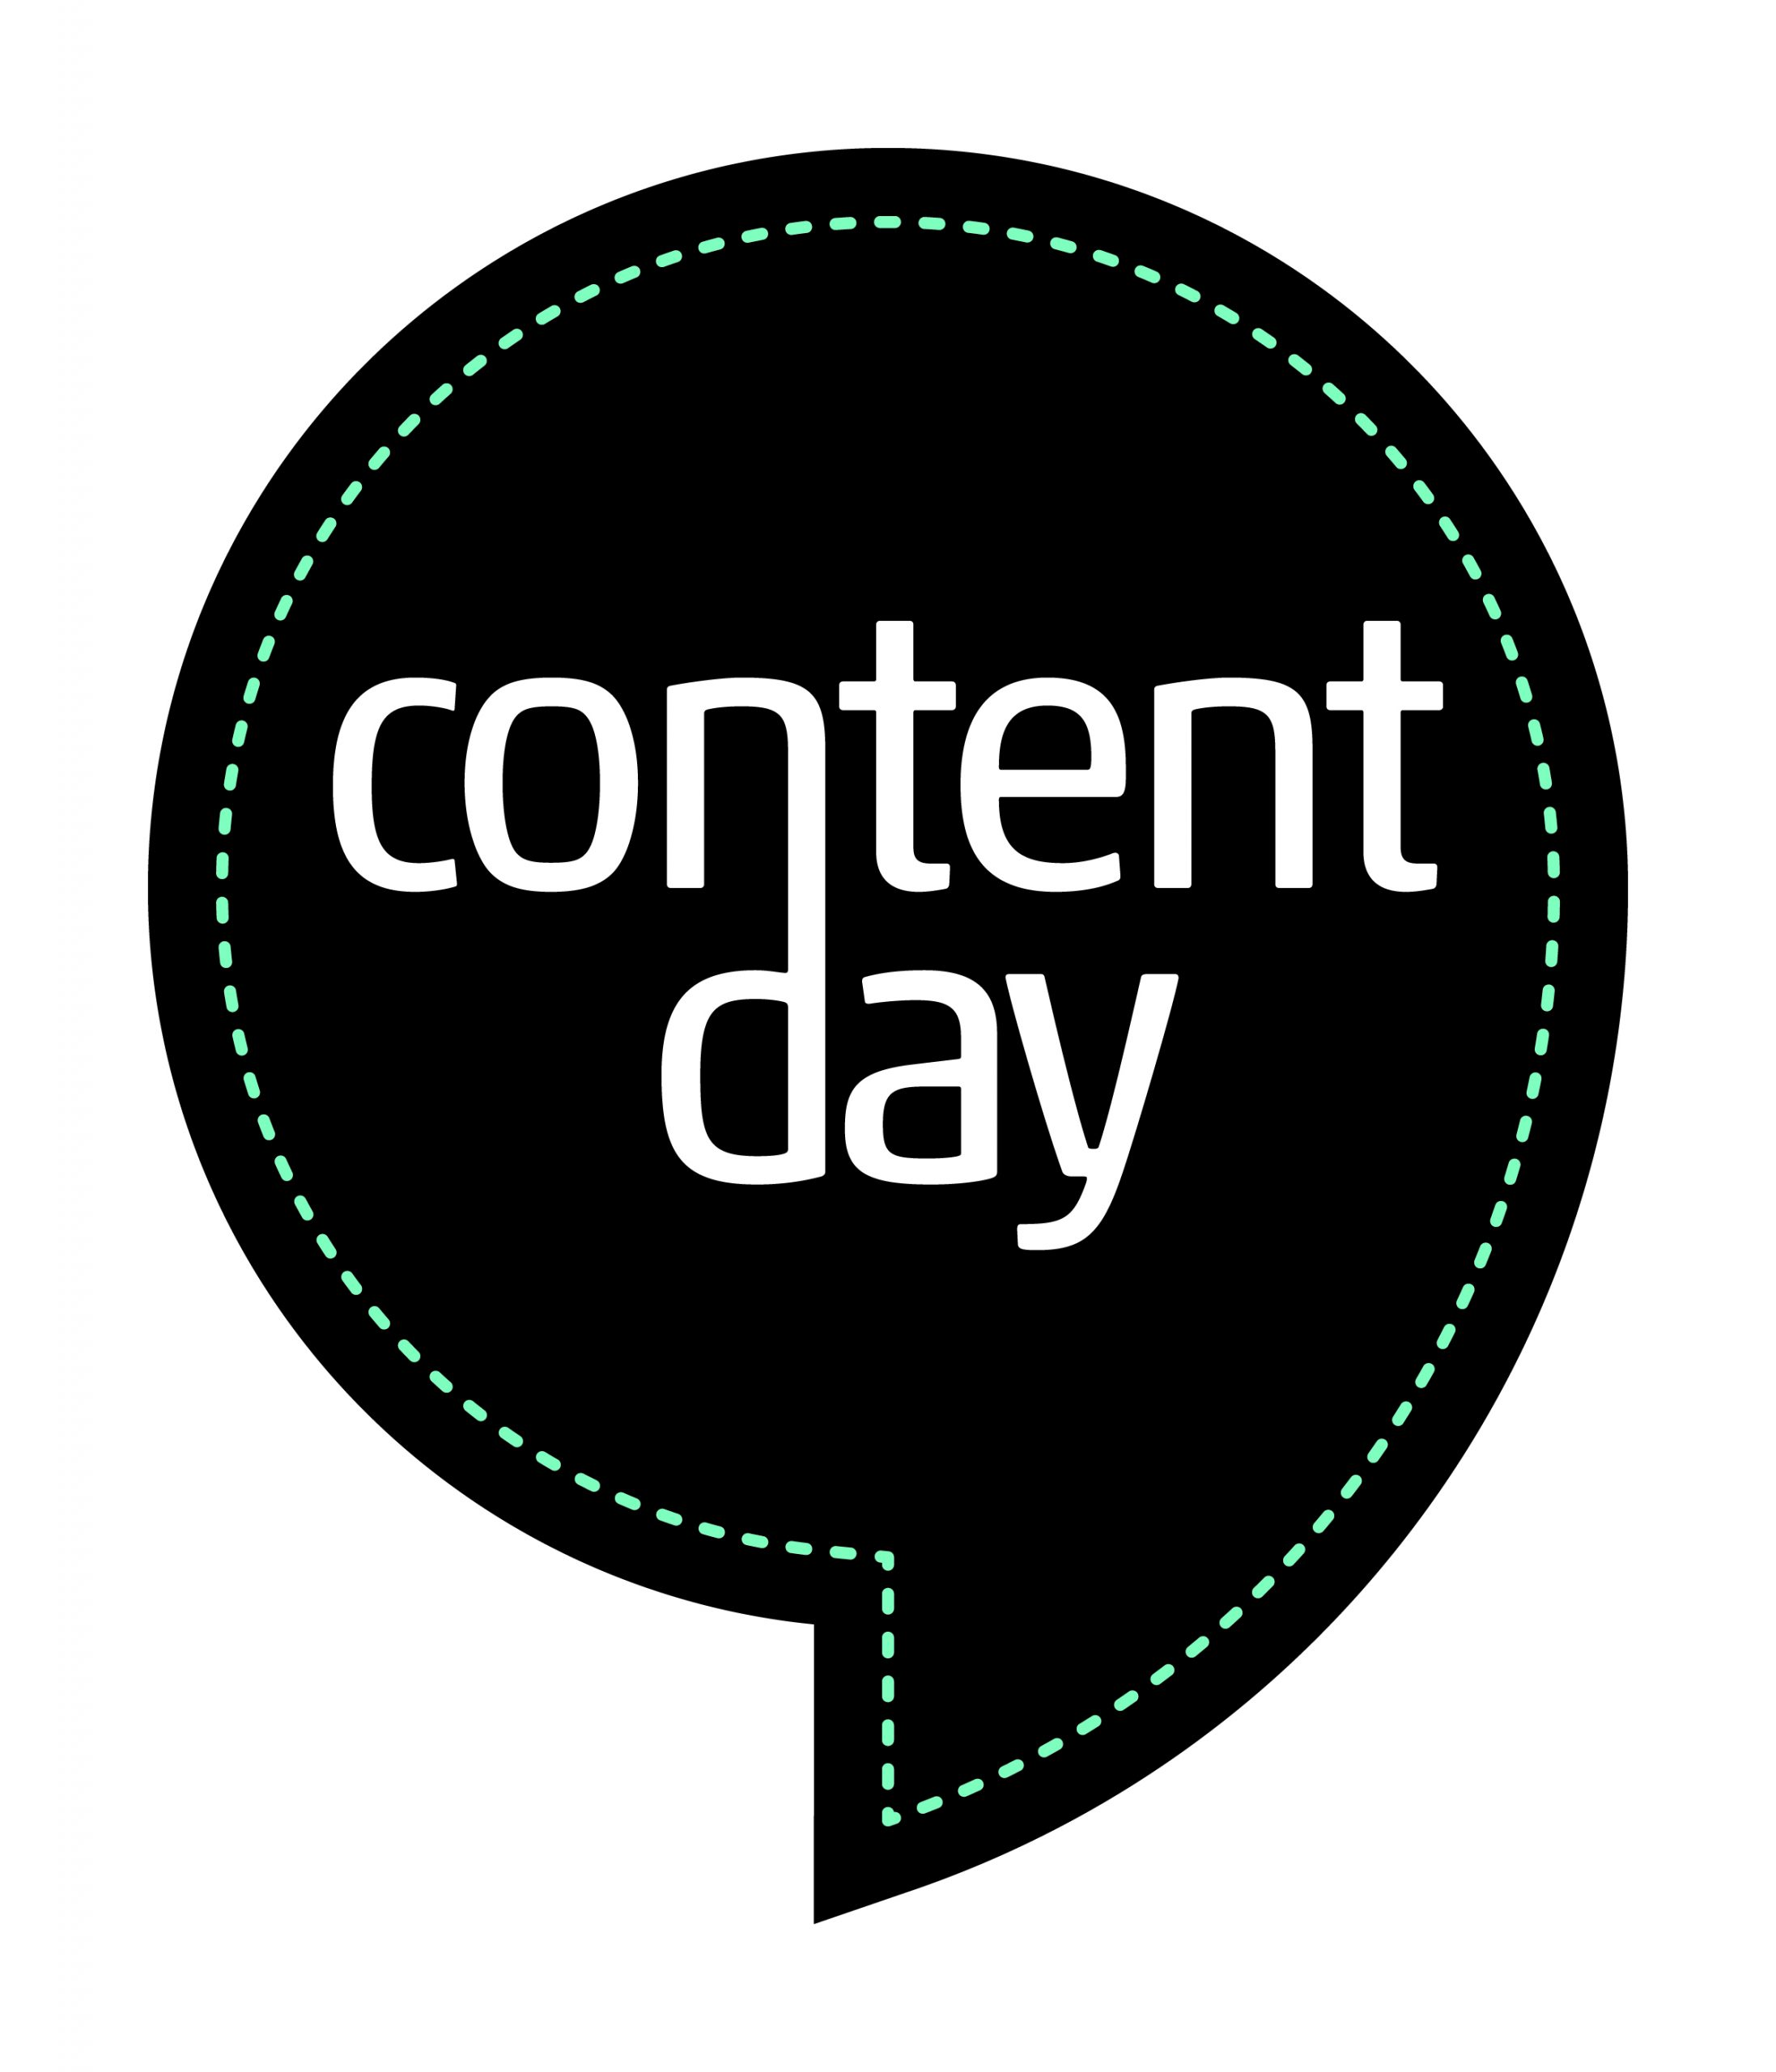 ContentDay